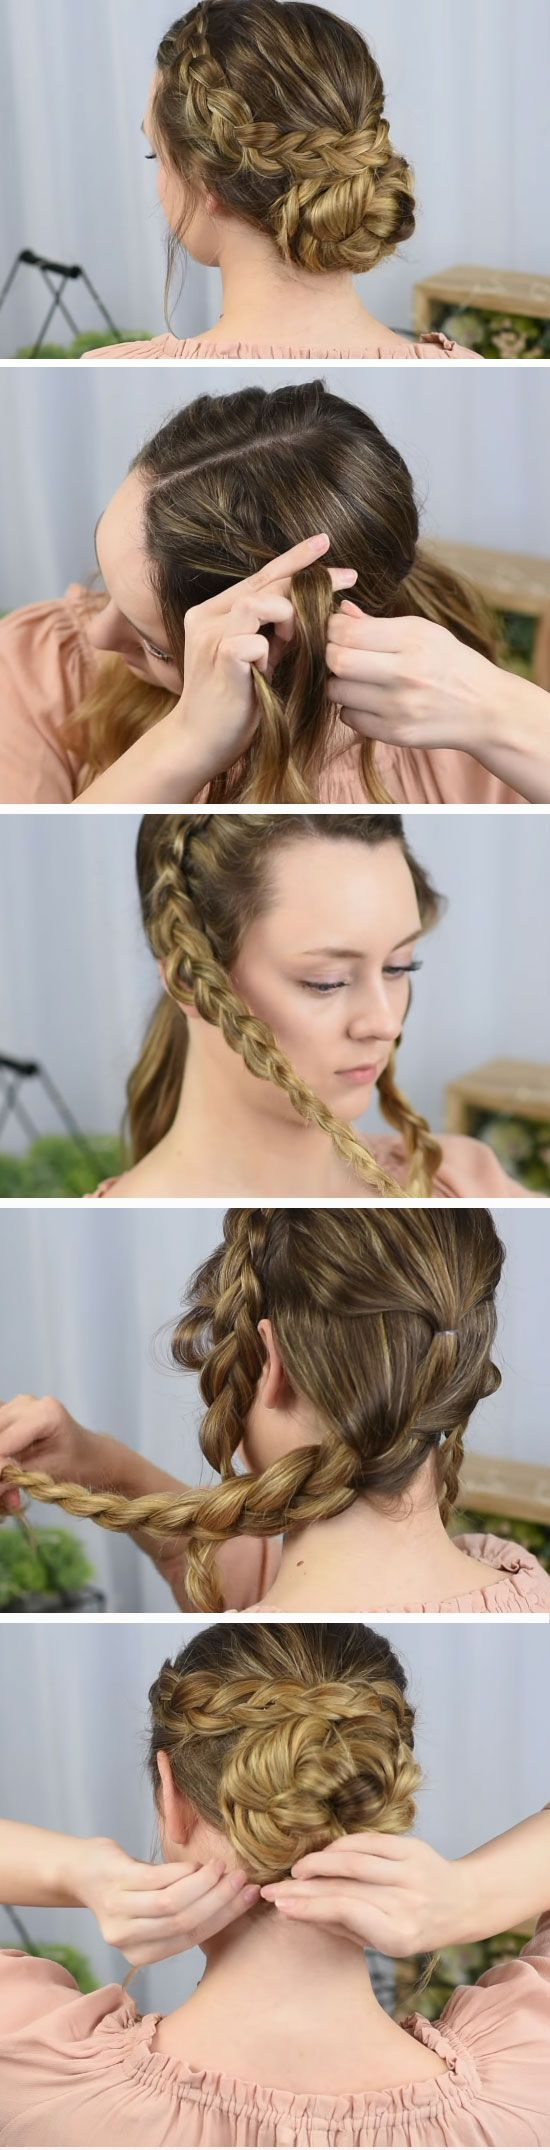 2017 06 homecoming hairstyles long hair - 15 Easy Diy Prom Hairstyles For Medium Hair